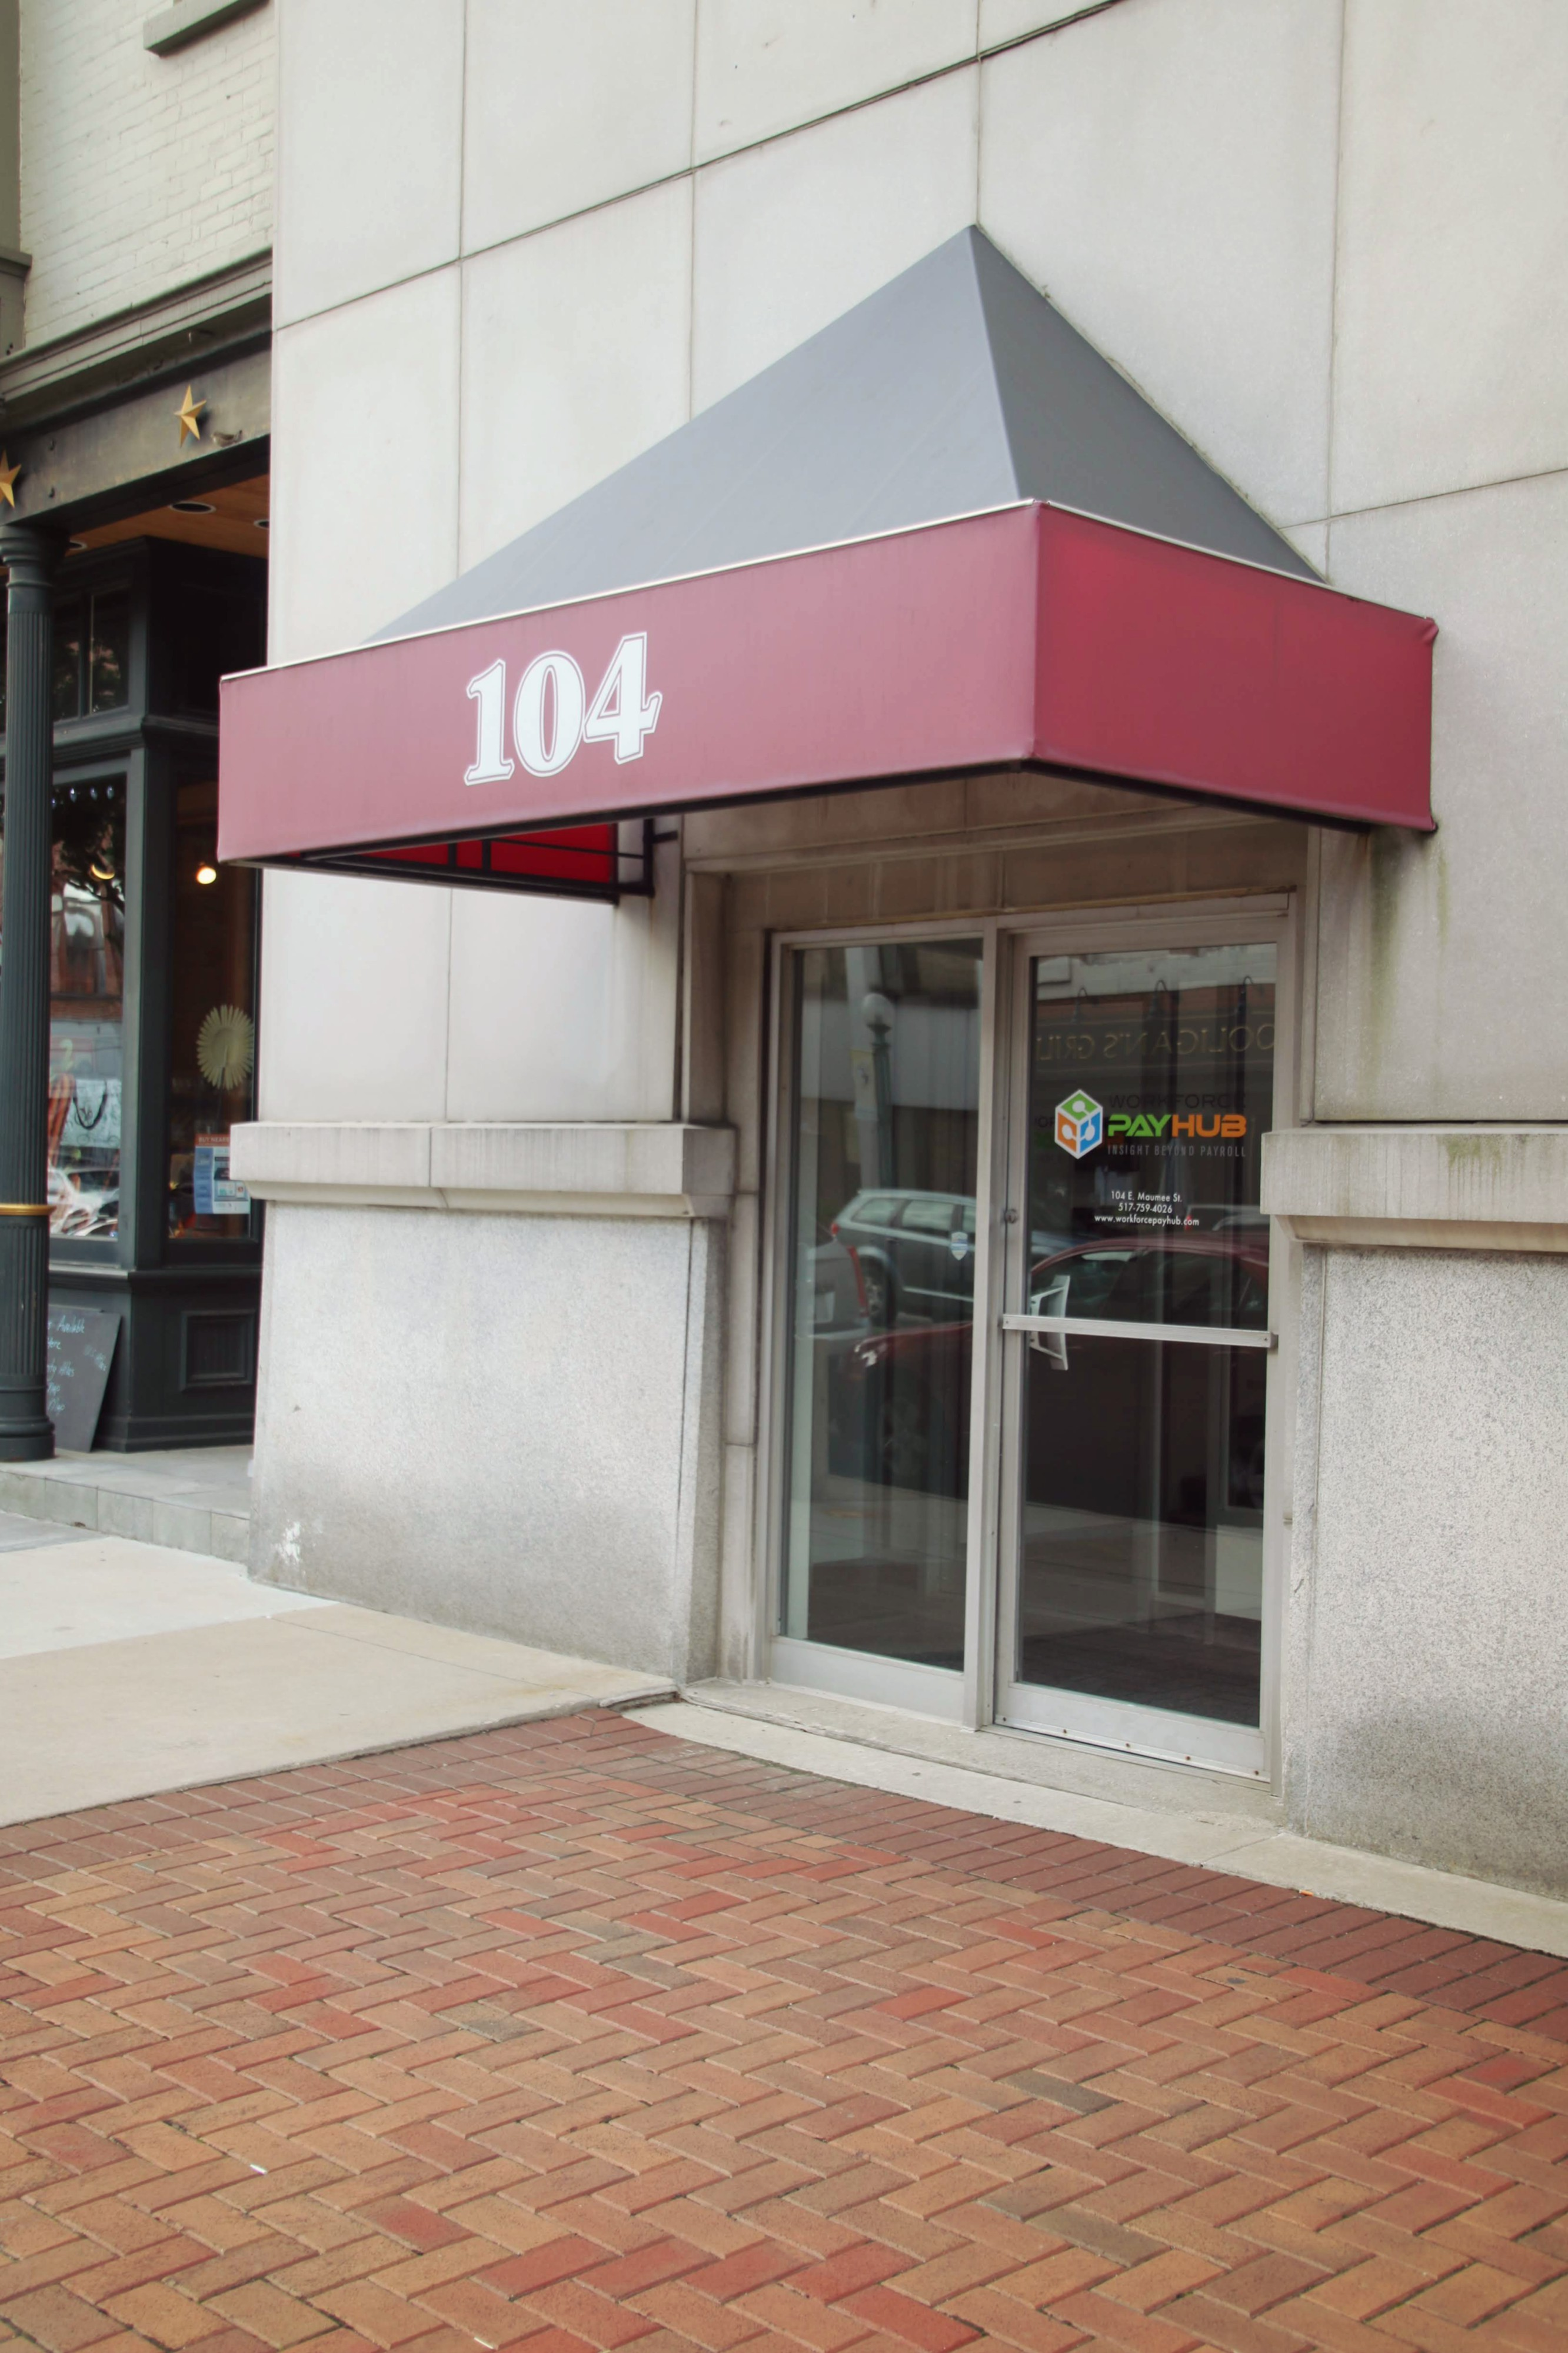 Entrance to 104 Maumee Street in Adrian, MI